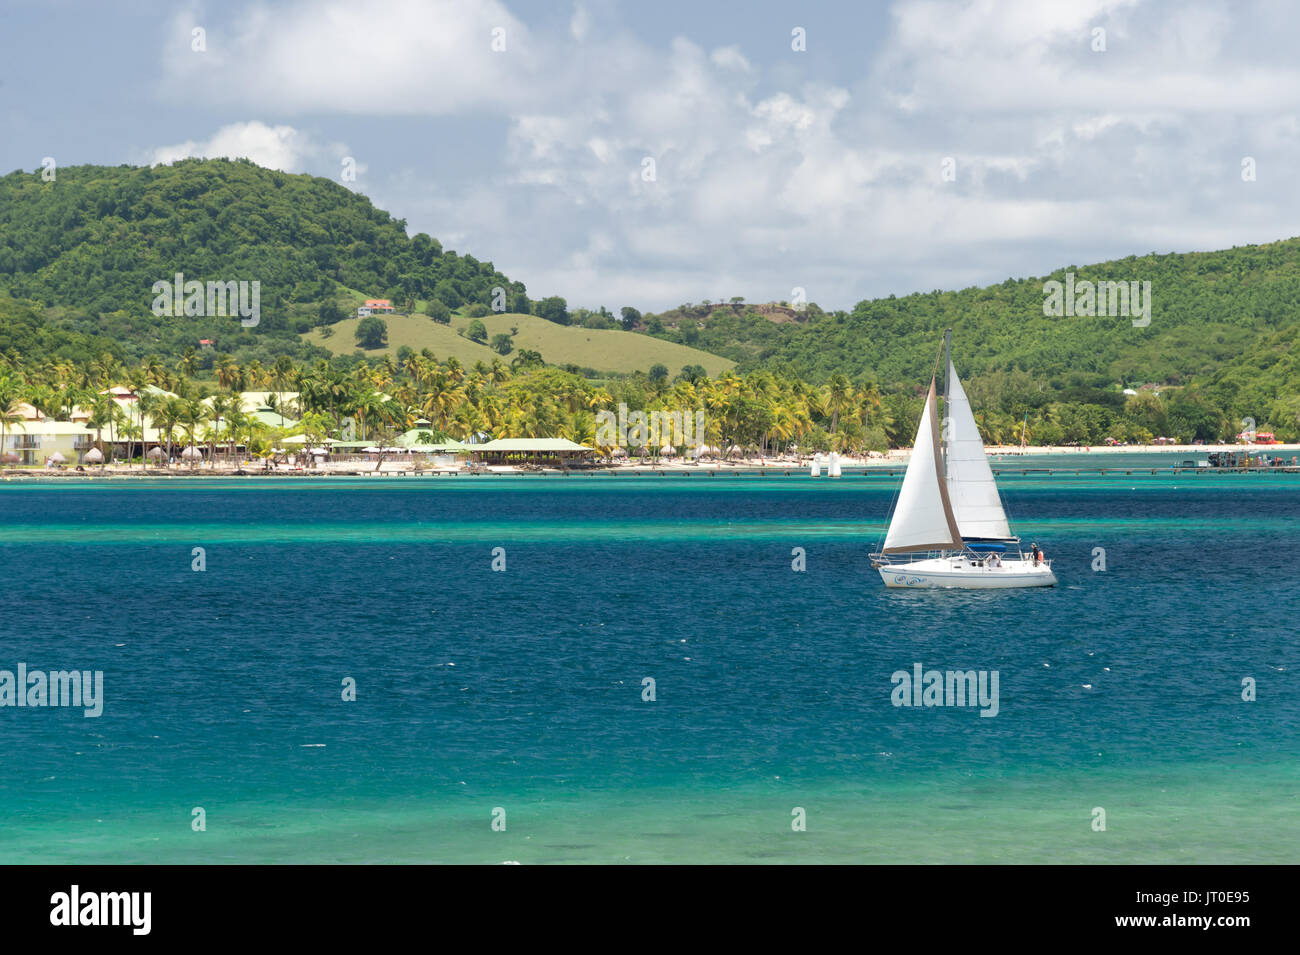 Sailboat sailing on Baie du Marin, Martinique, Caribbean, and Club Med resort in background - Stock Image